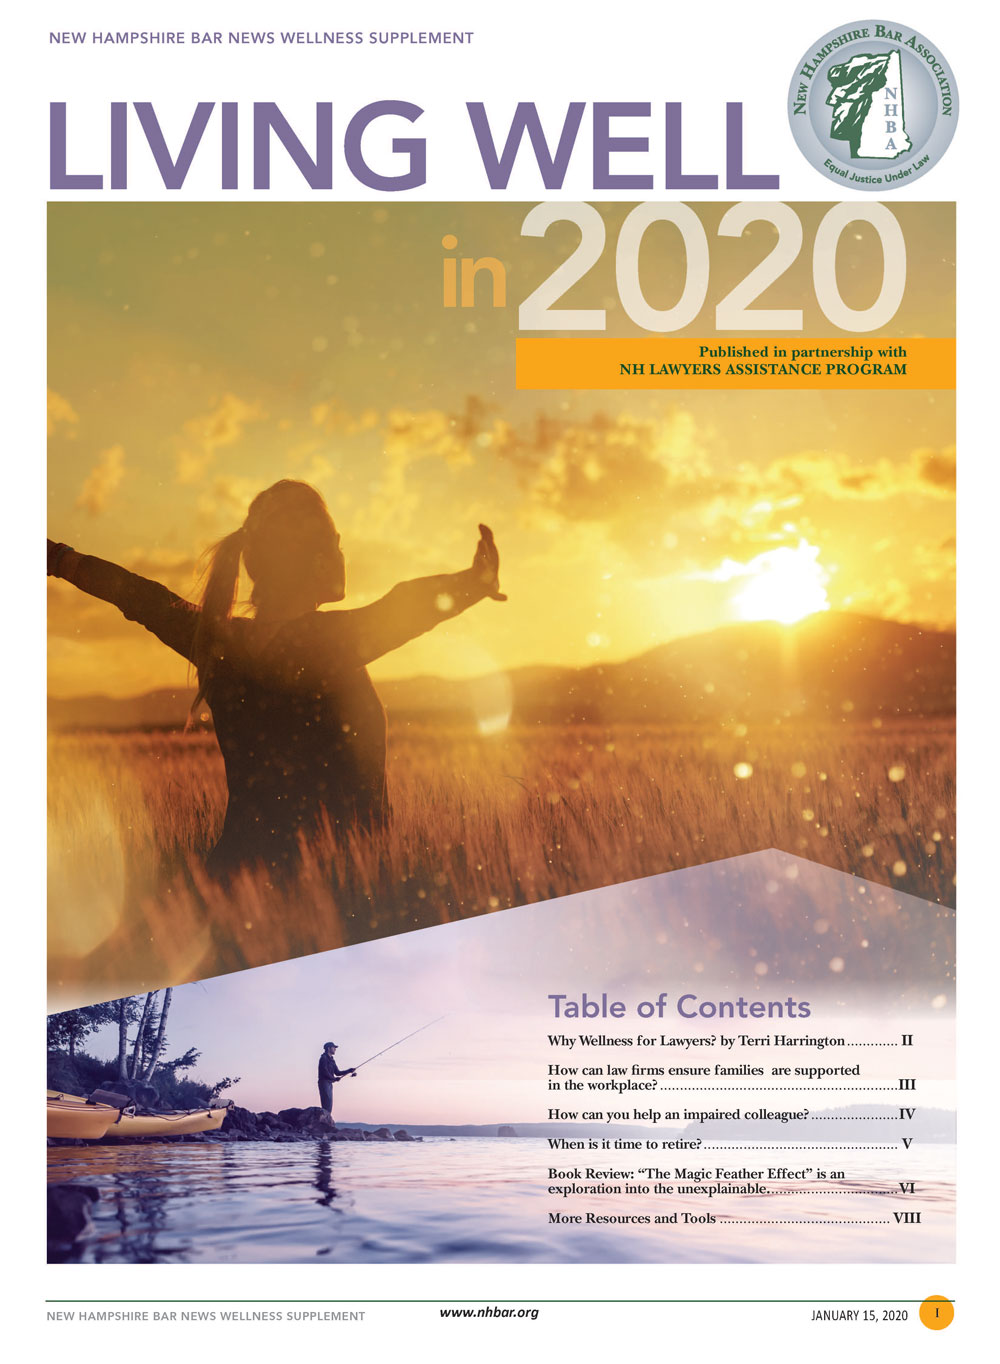 Bar News 202 Living Well Supplement front cover